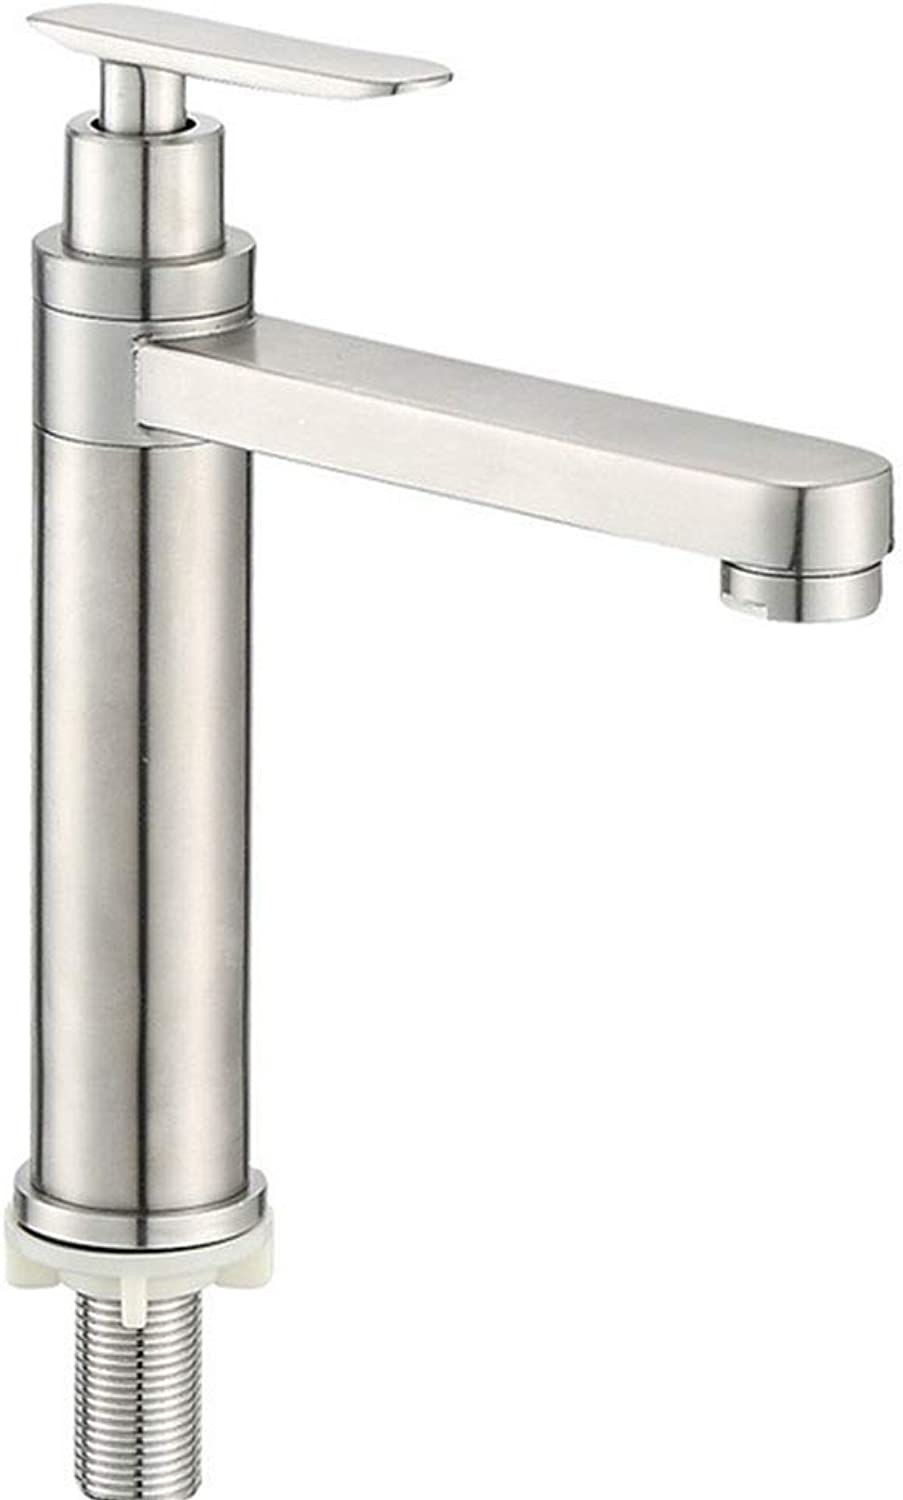 Towero Basin faucet 304 stainless steel single greenical faucet